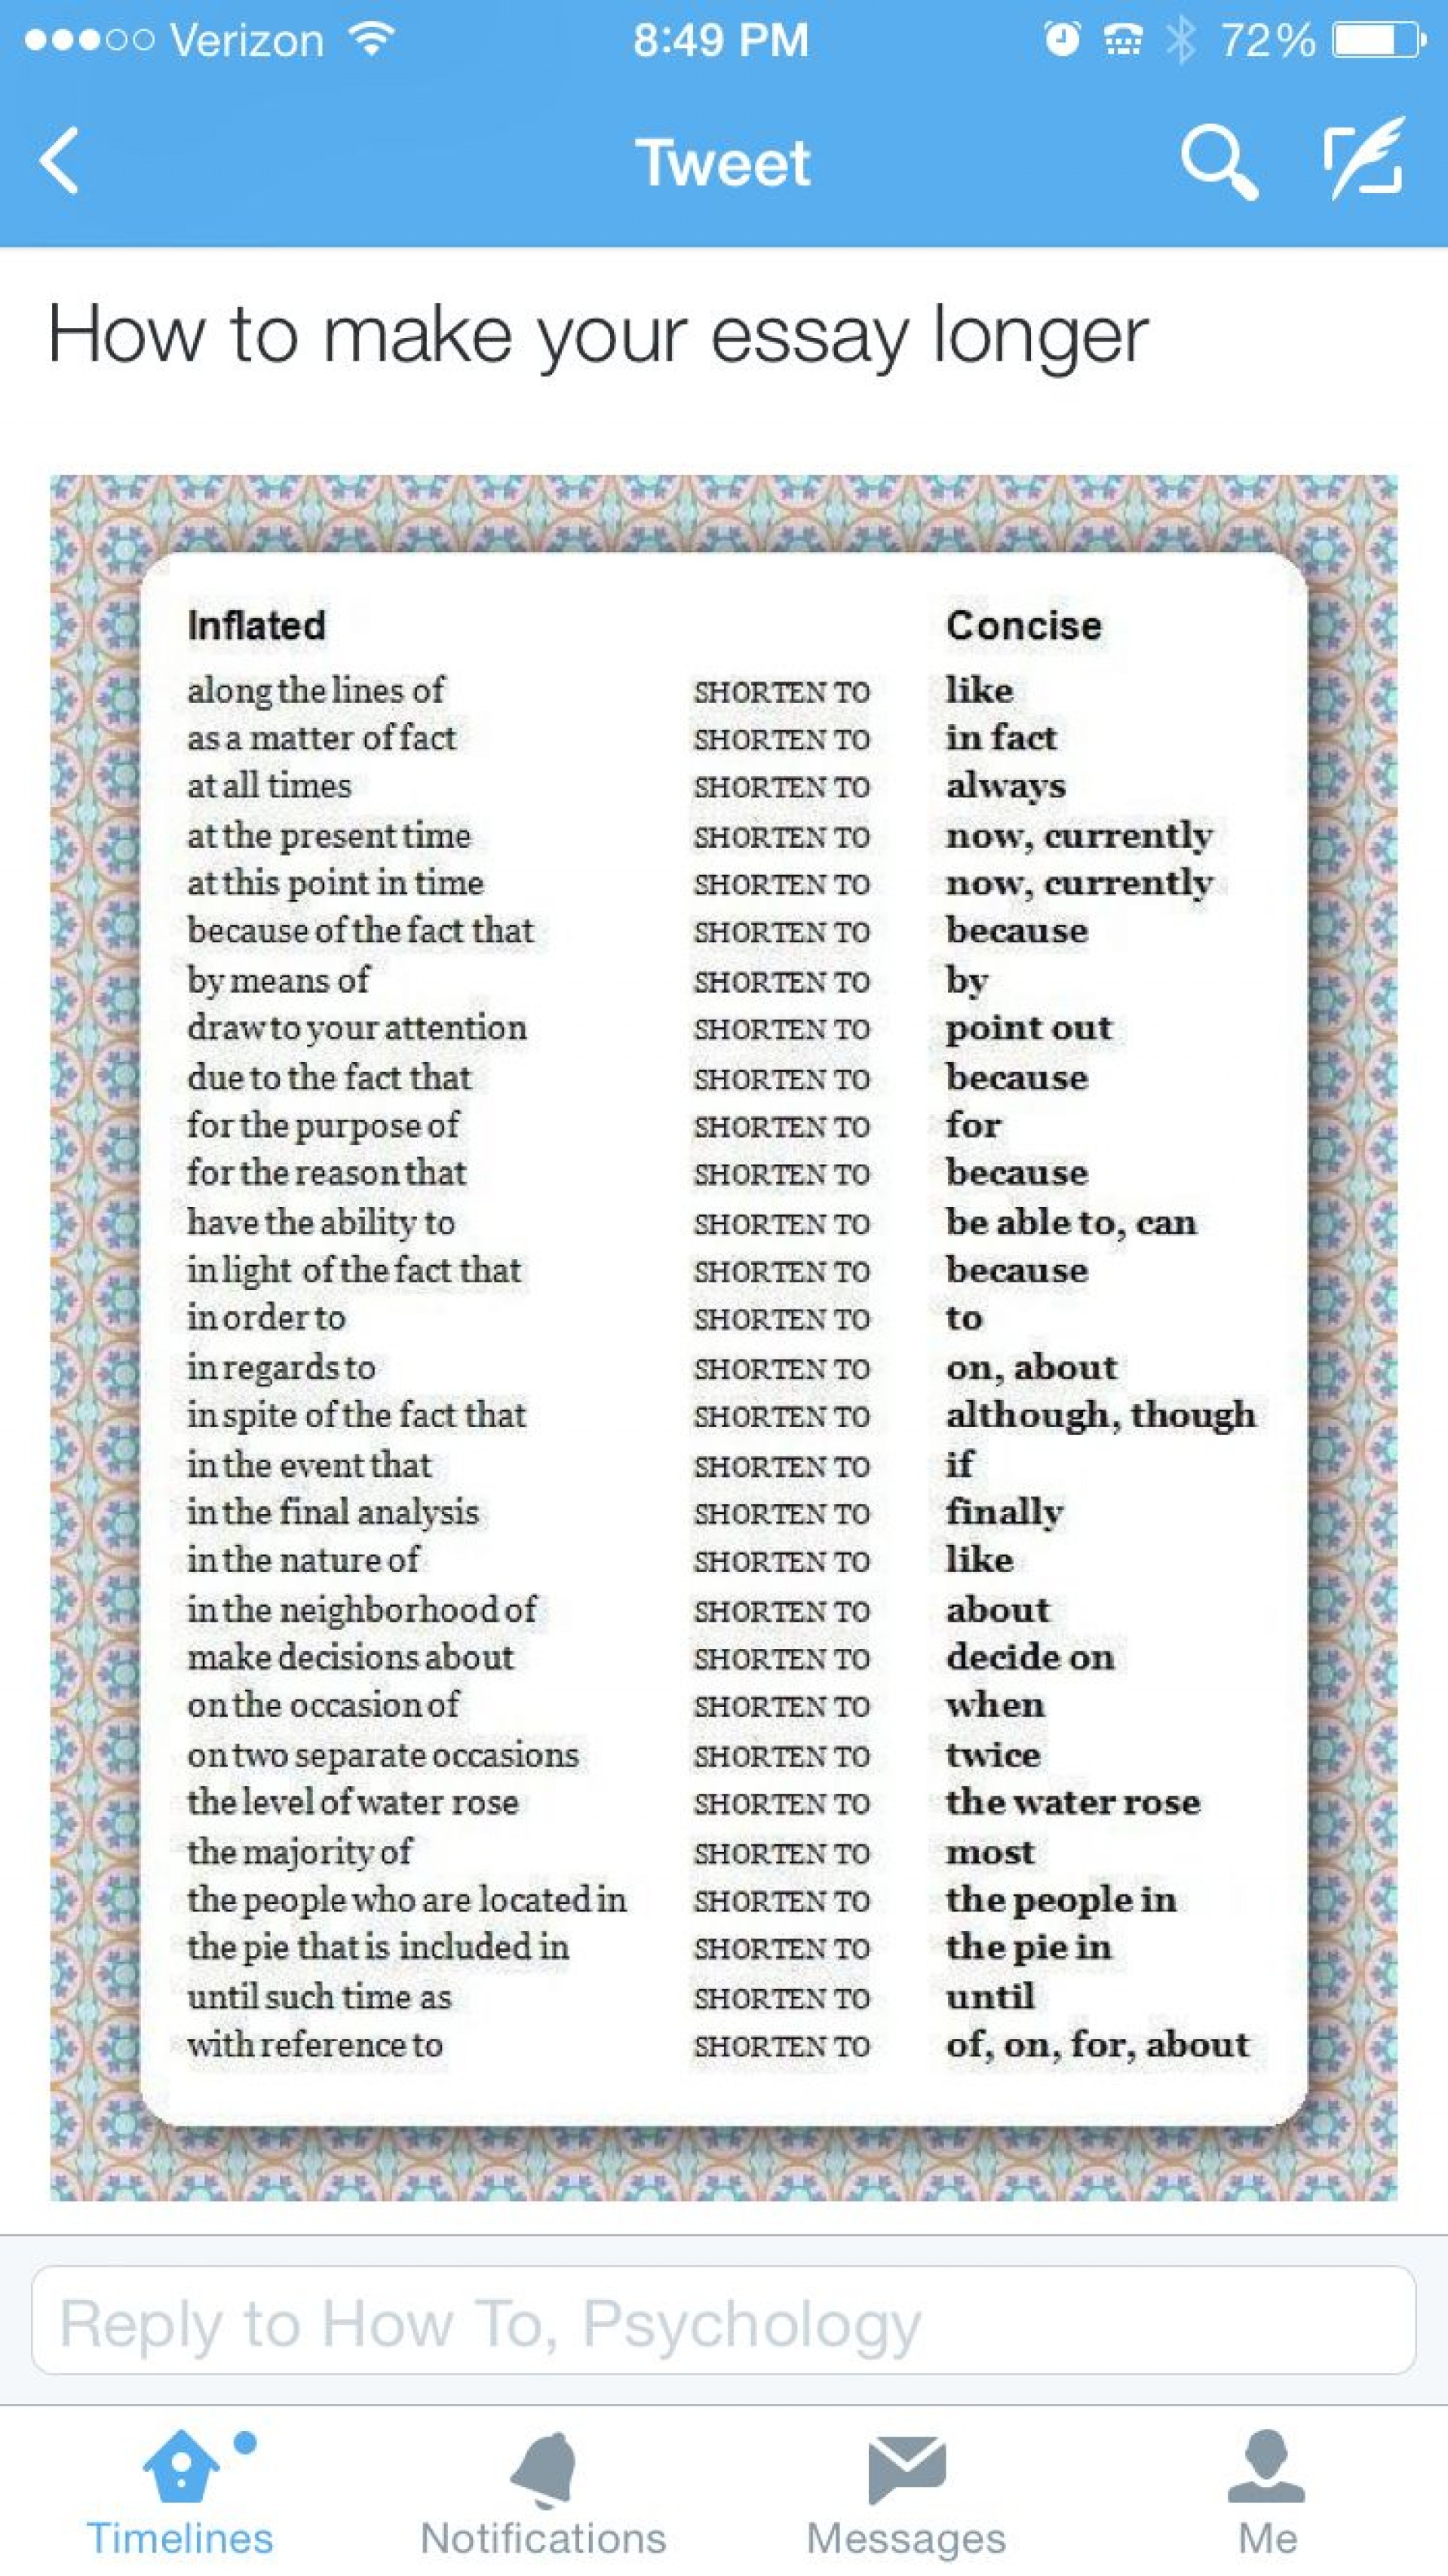 004 How To Make An Essay Longer Example Unusual Word Count With Periods Period Trick Google Docs 1920